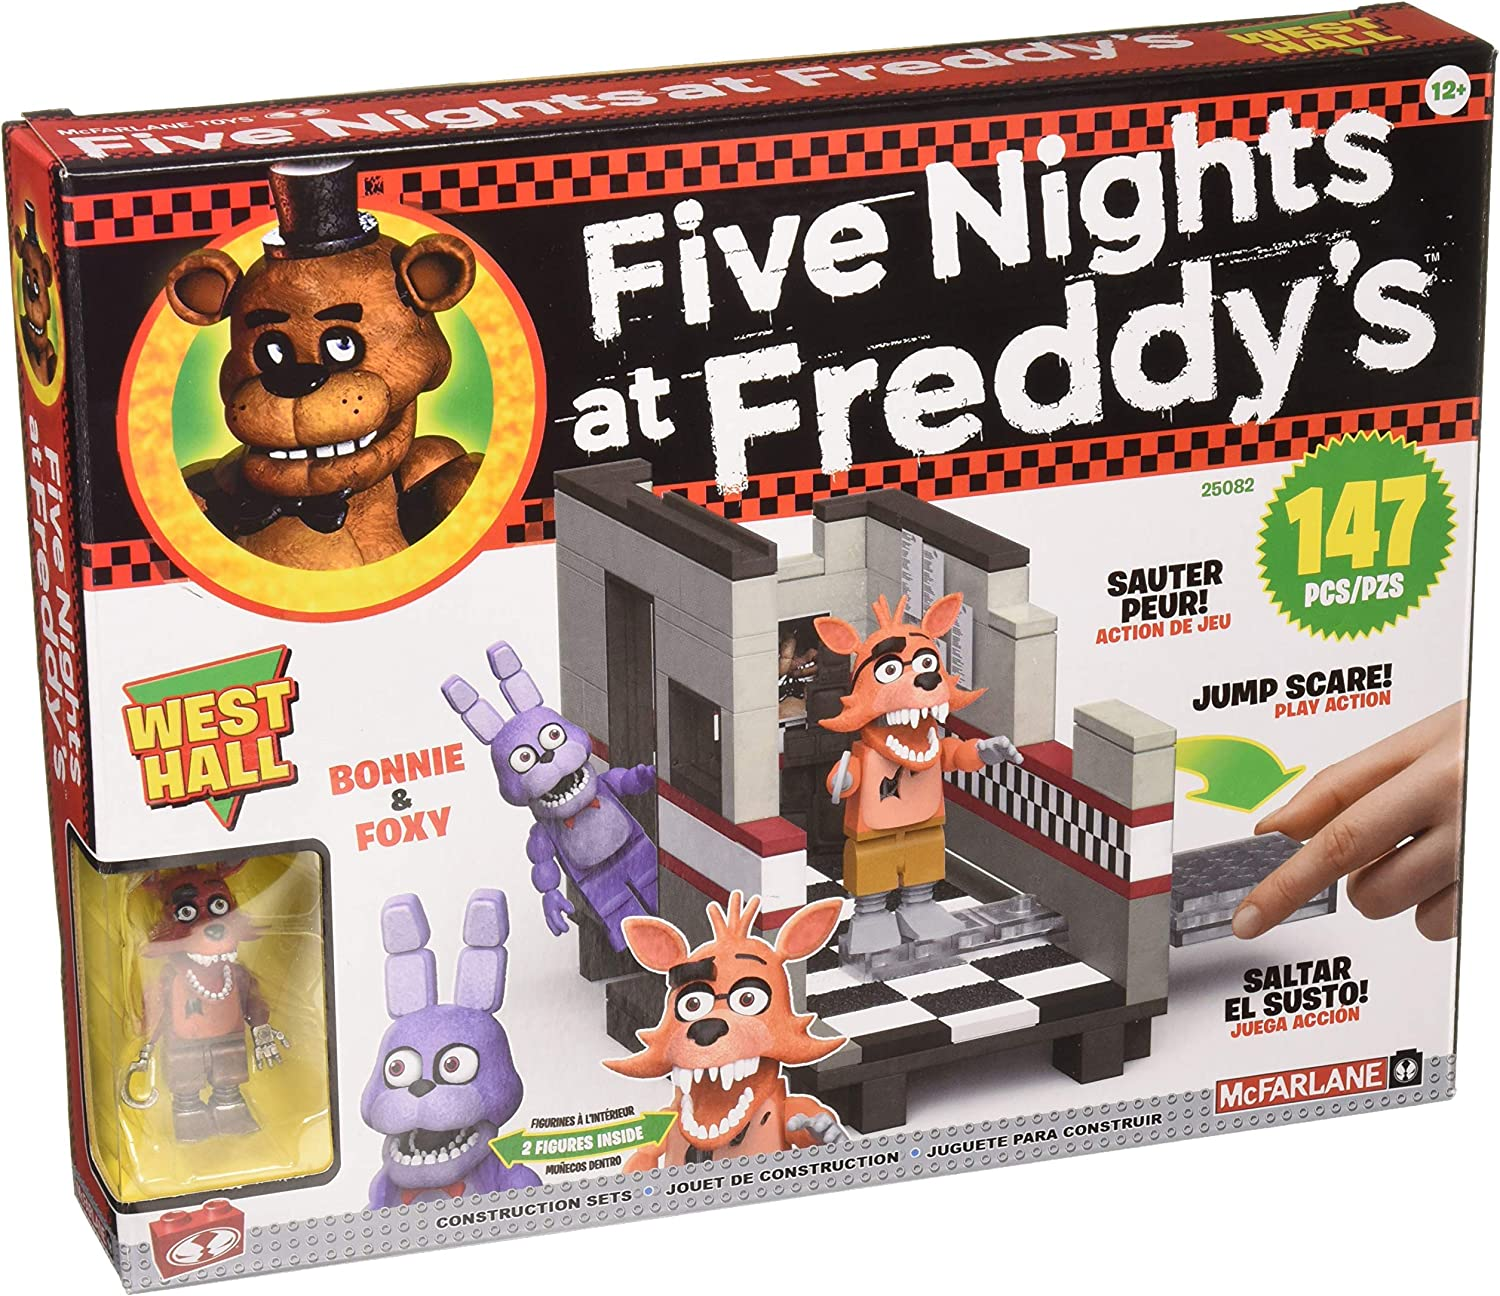 McFarlane Toys Toys Toys Five Nights at Freddy's West Hall